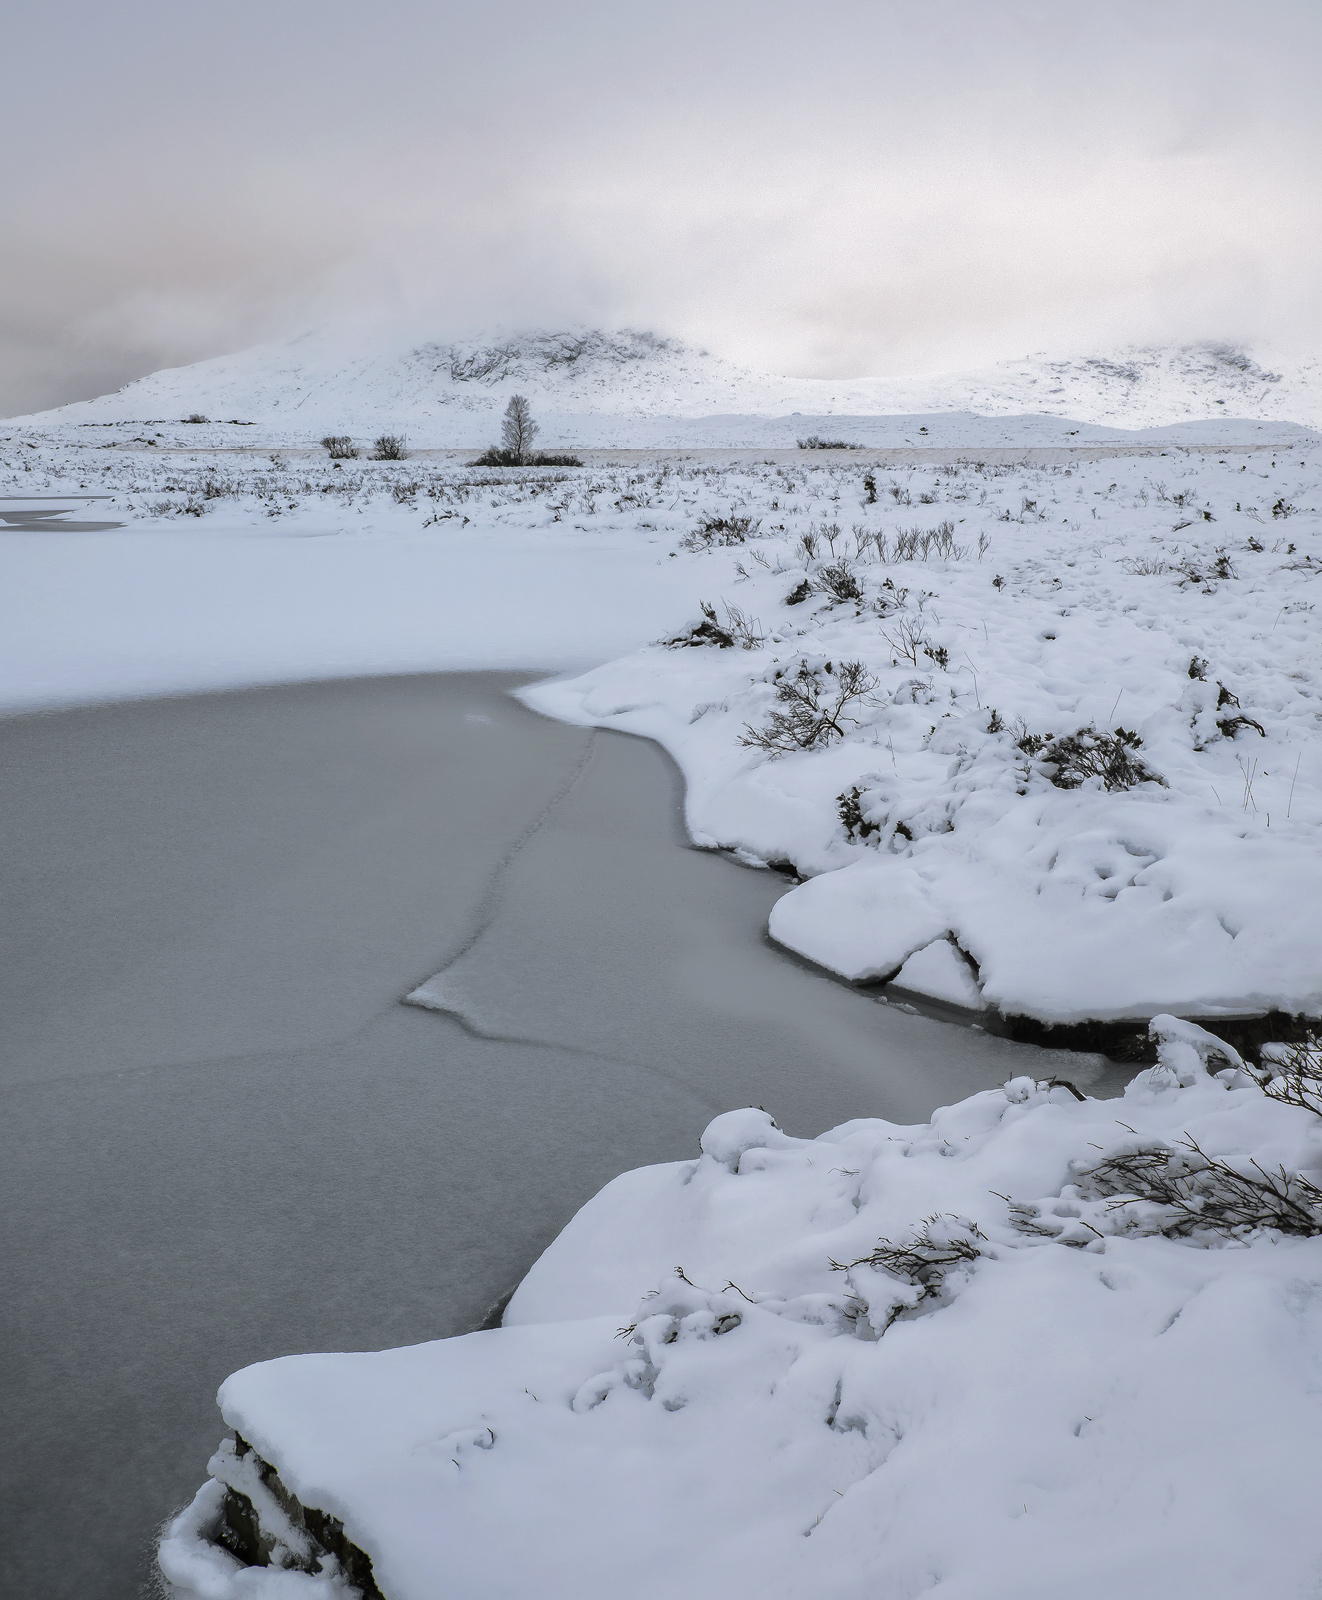 Having stomped out across a snow covered wasteland adjacent to Loch Ba, I found myself in a snowy desert of almost featureless...